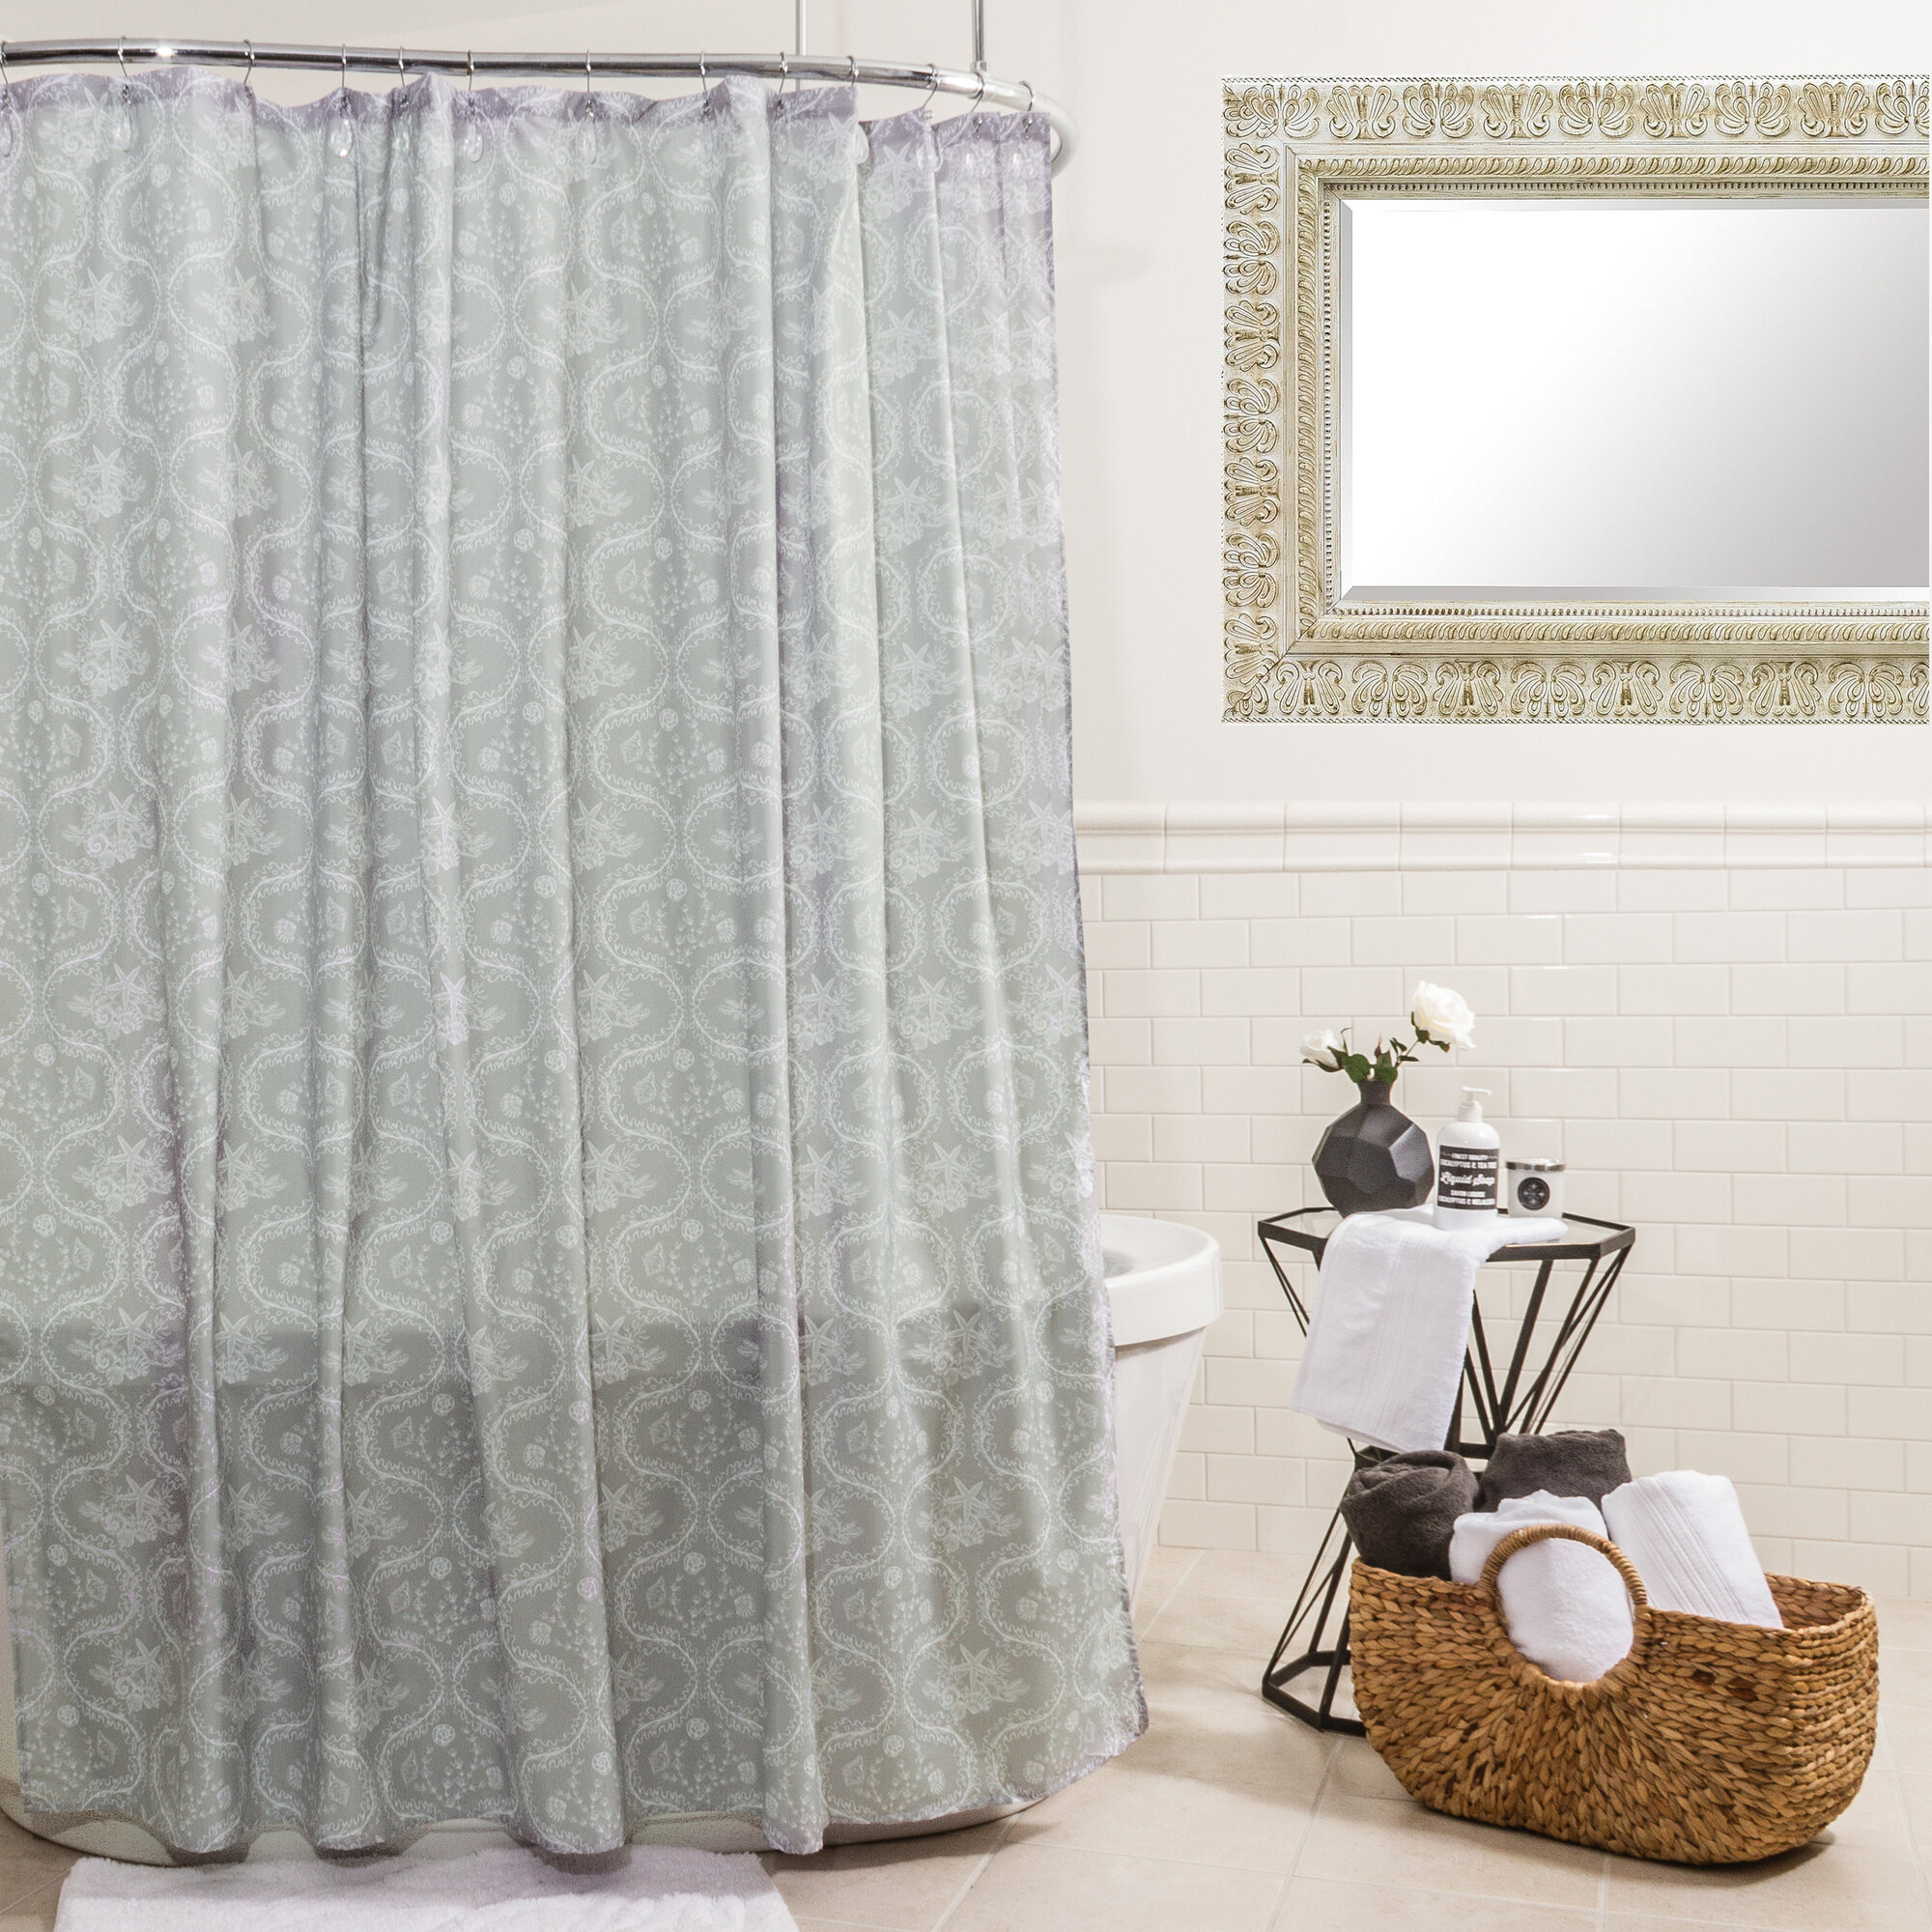 store curtains Adult shower